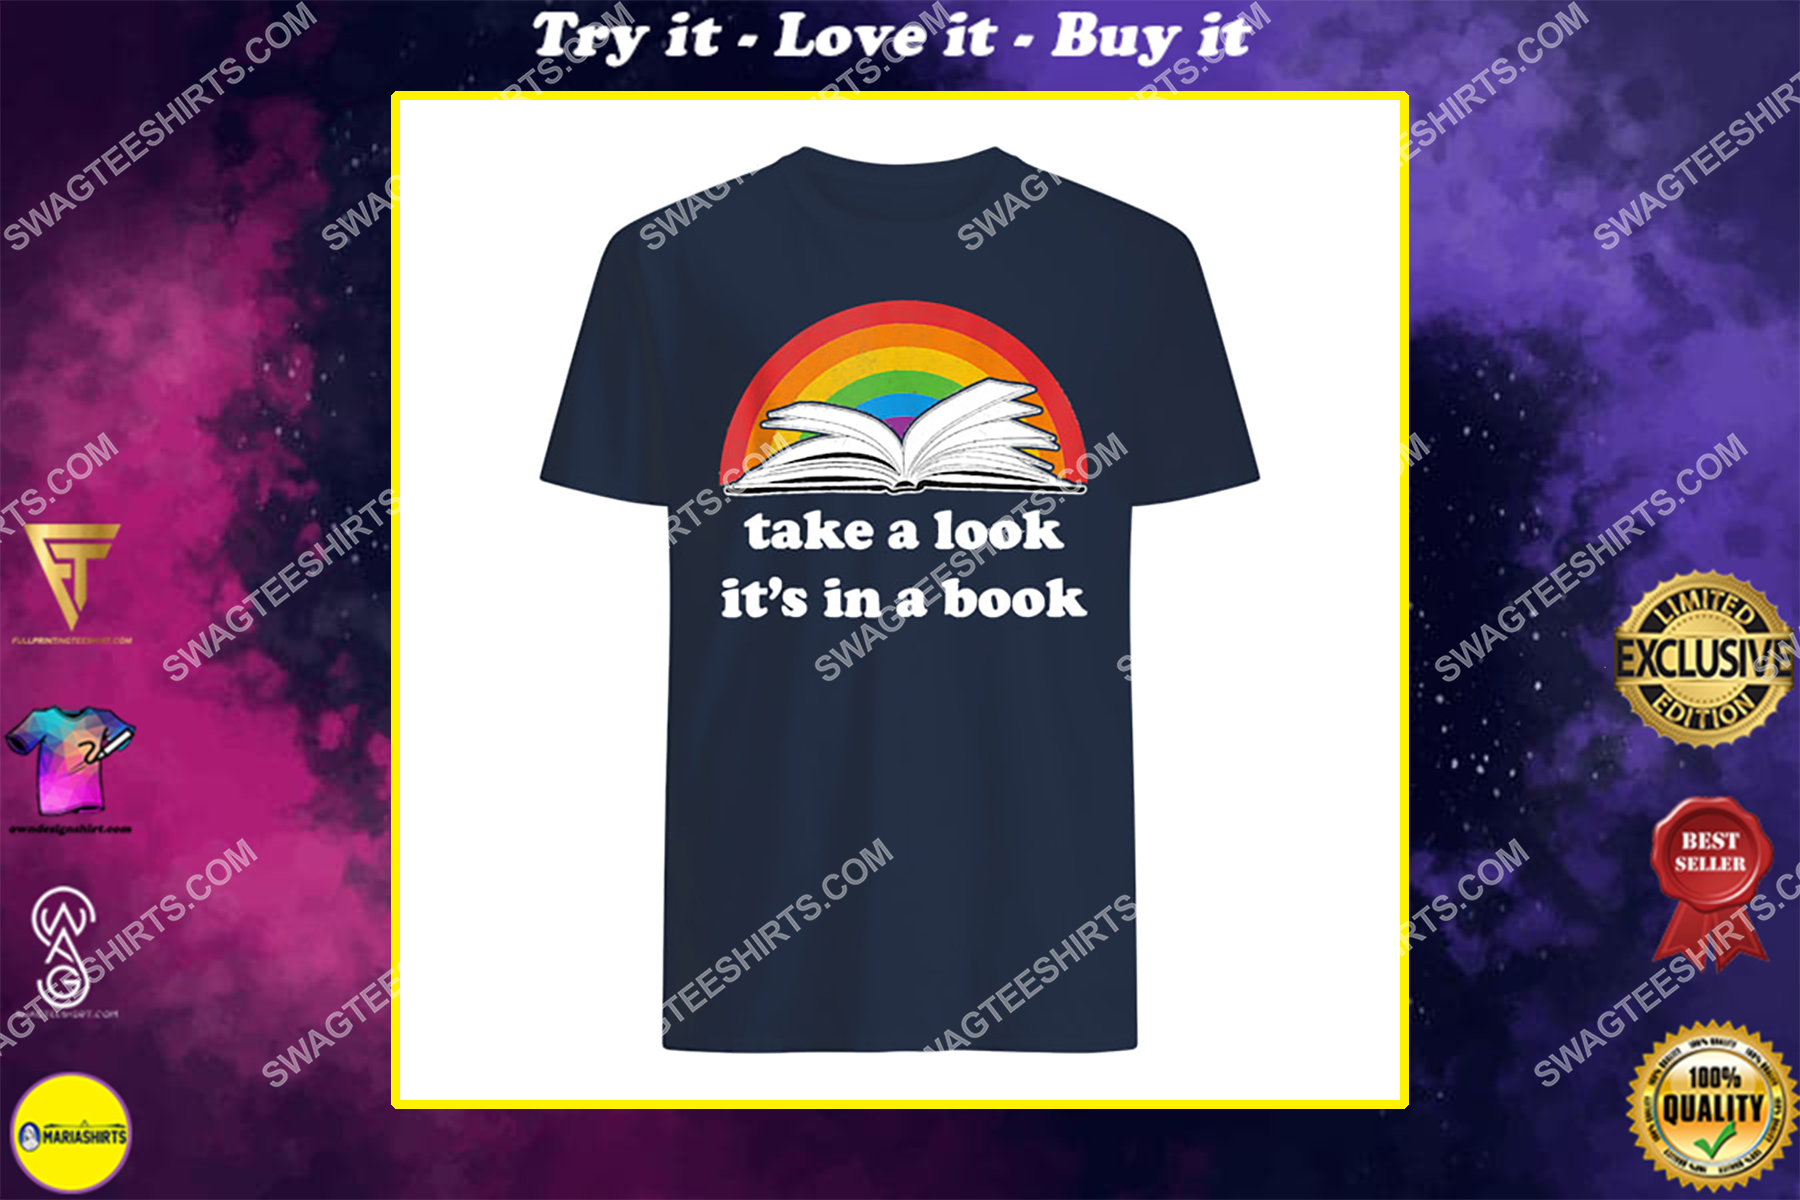 take a look it's in a book reading vintage retro rainbow shirt